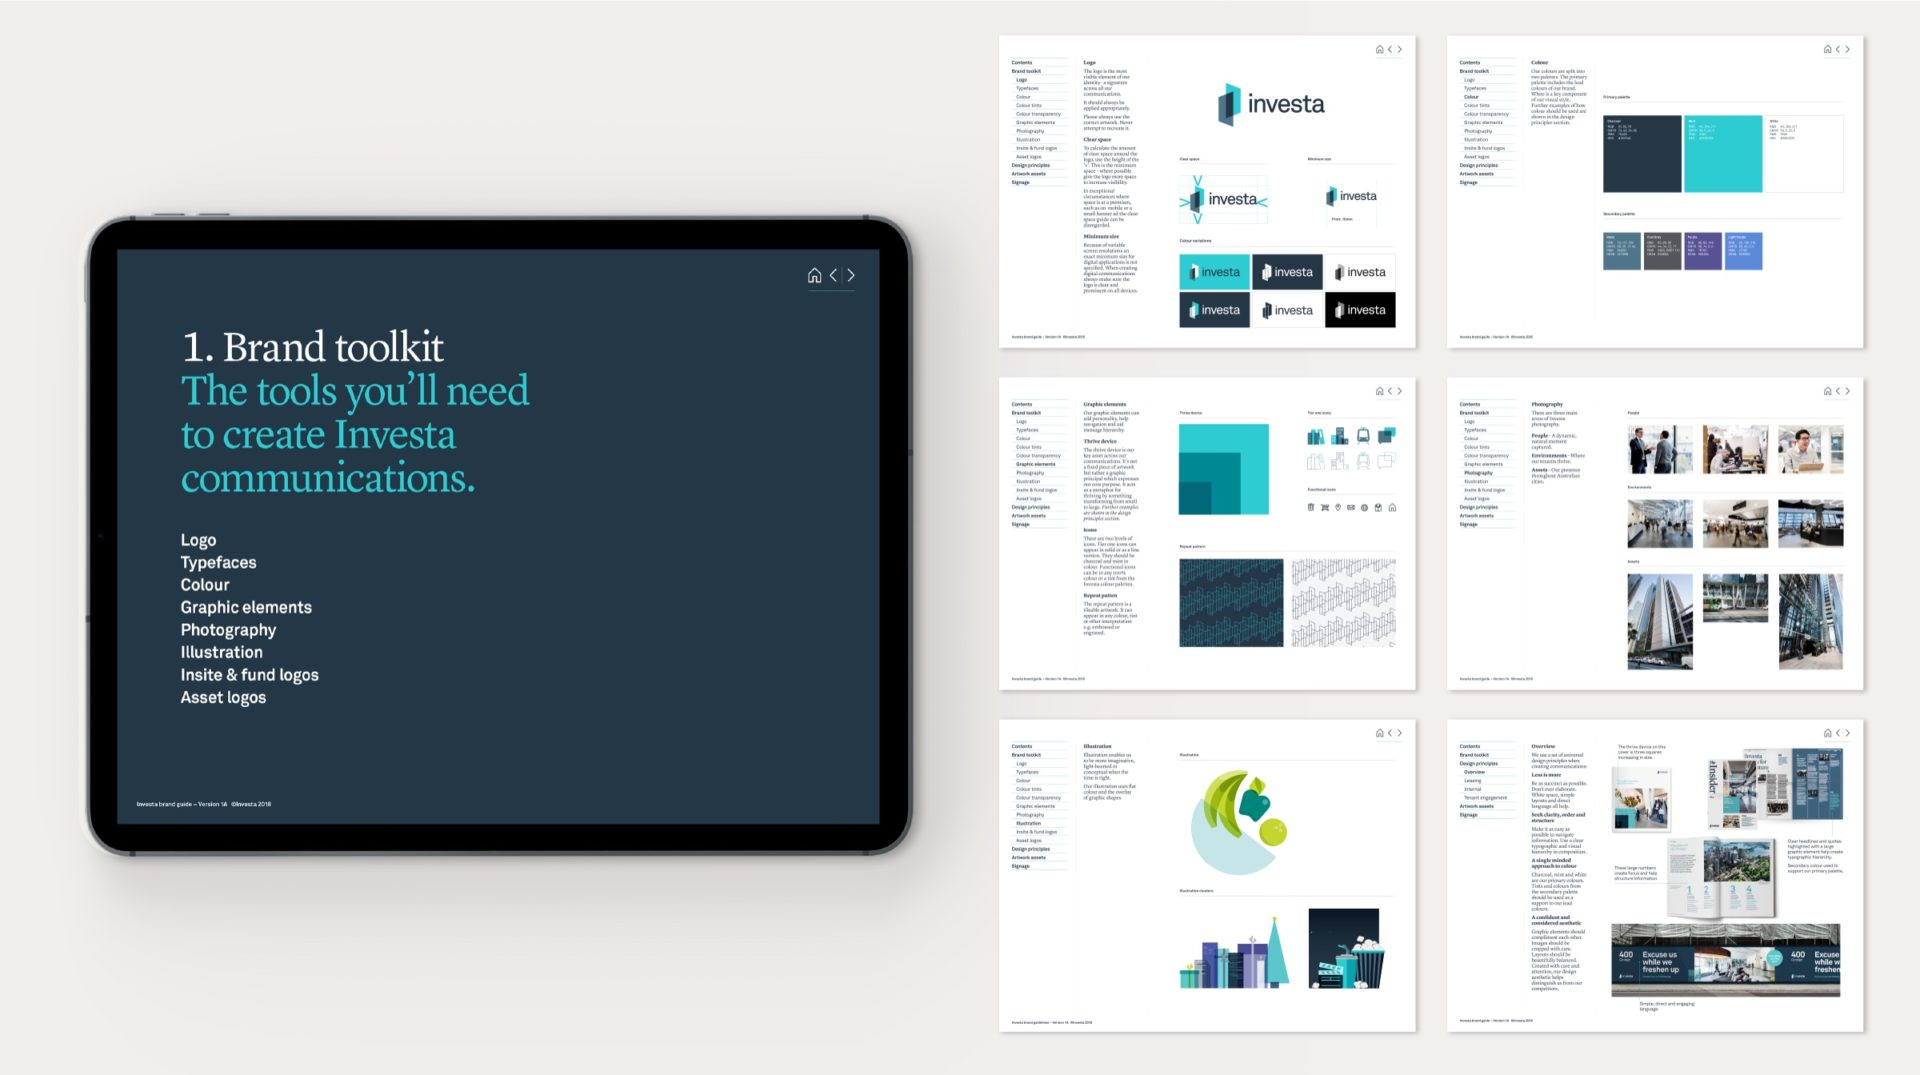 An iPad displaying the brand standards cover with a selection of guideline pages shown to the right